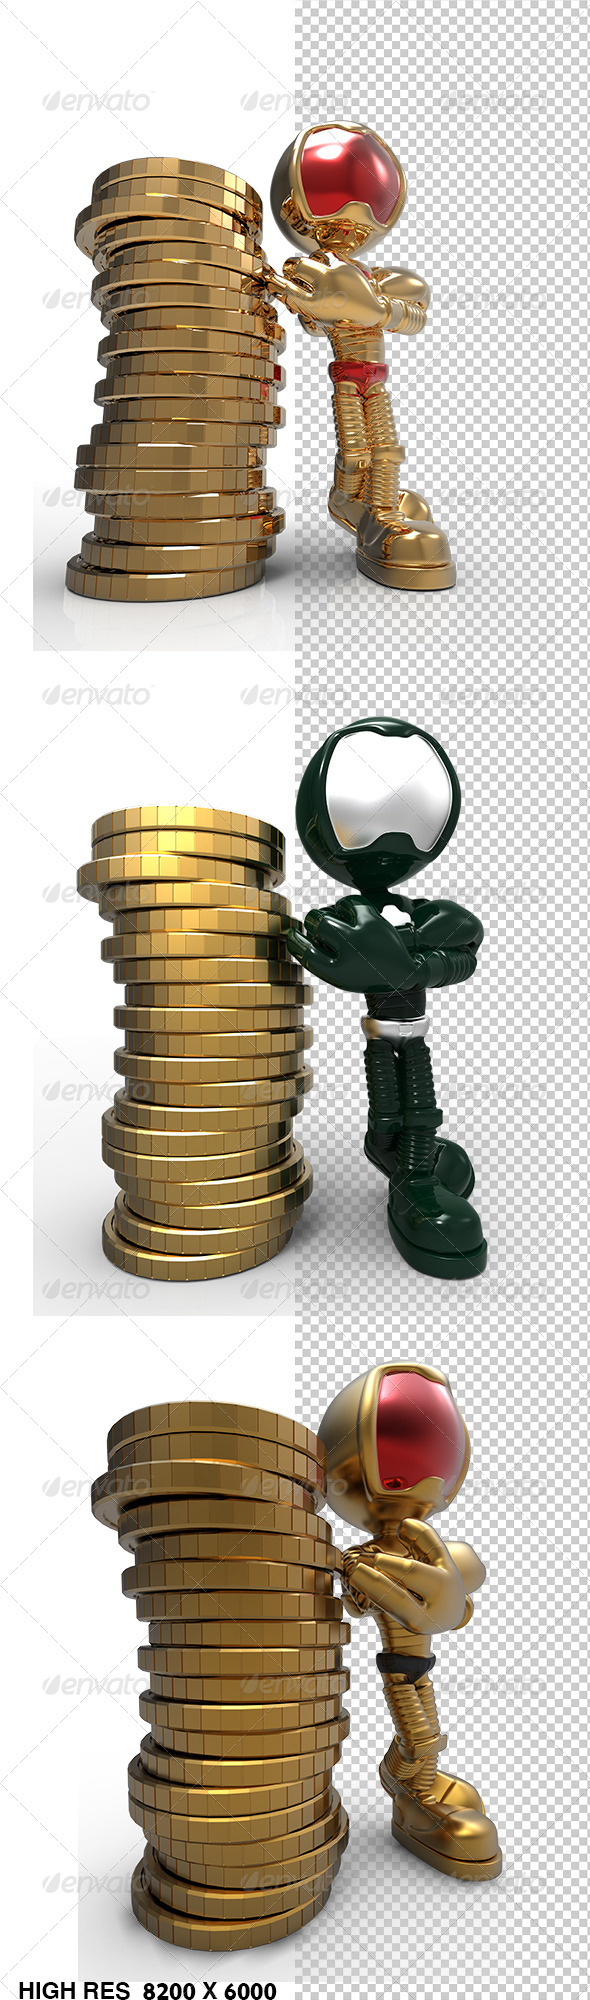 GraphicRiver Golden Guy 3D Character Stand Beside Money Coins 5780744